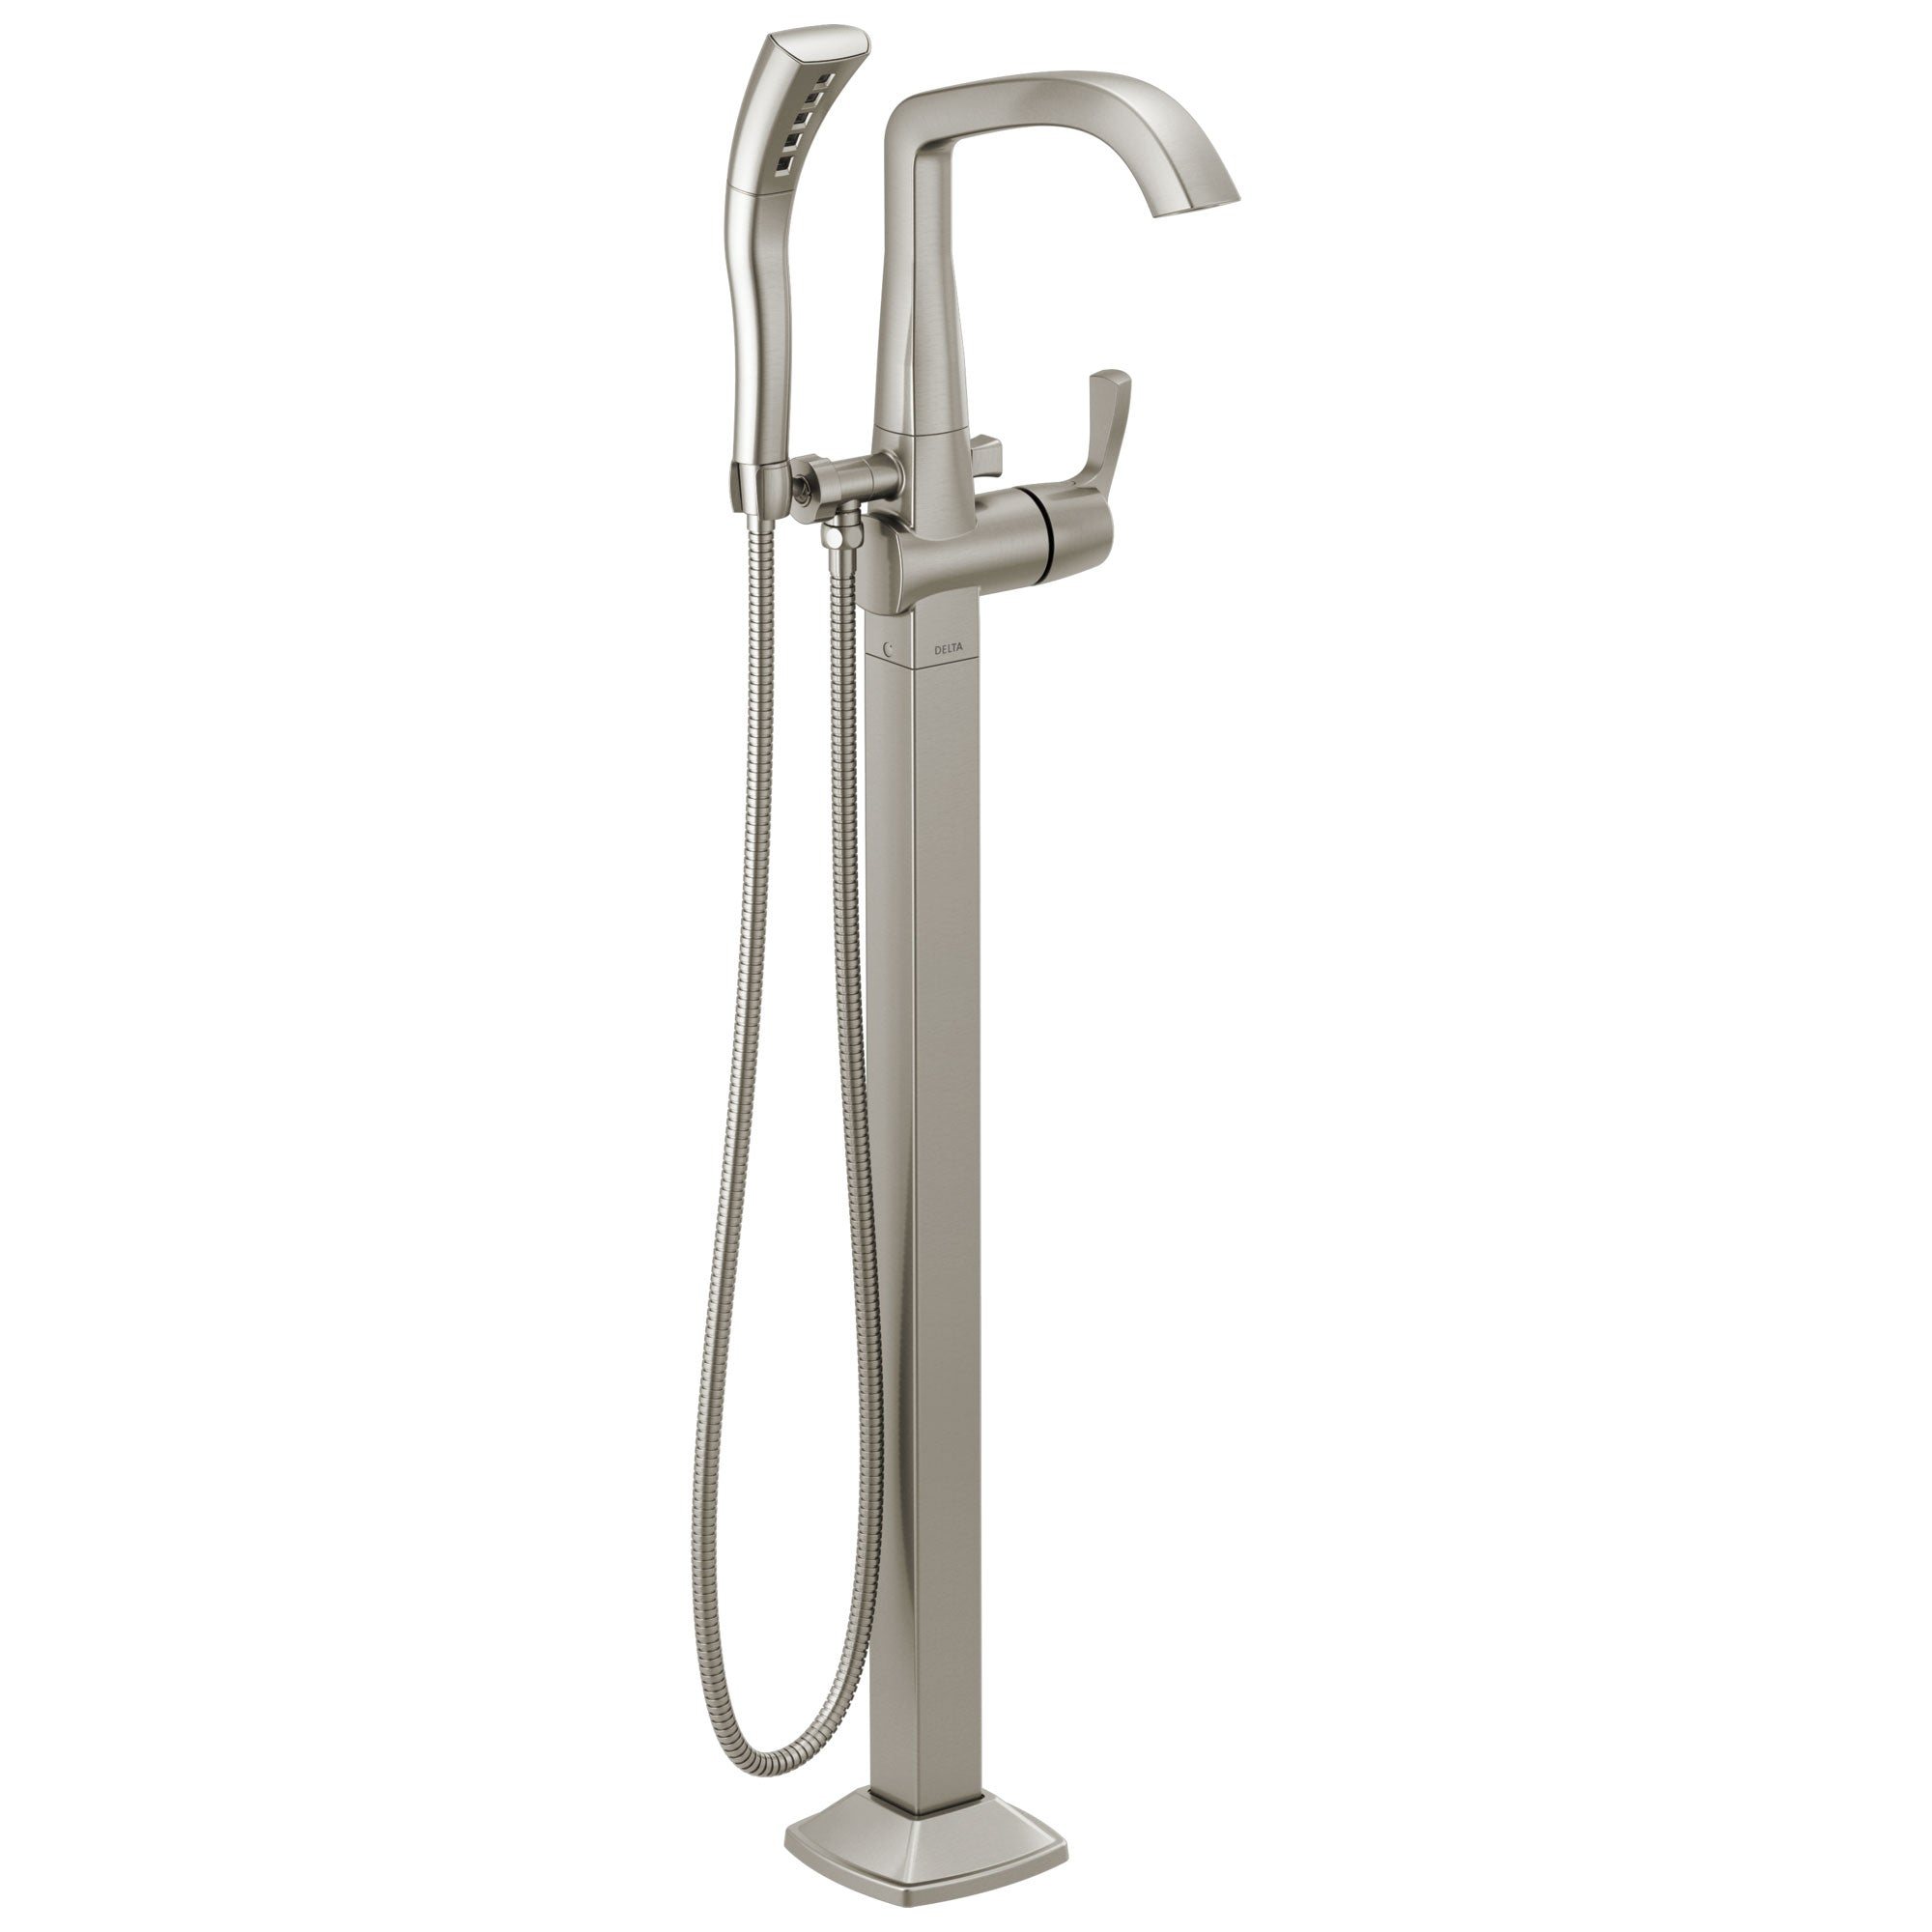 Delta Stryke Stainless Steel Finish Single Lever Handle Floor Mount Tub Filler Faucet with Hand Sprayer Includes Rough-in Valve D3033V